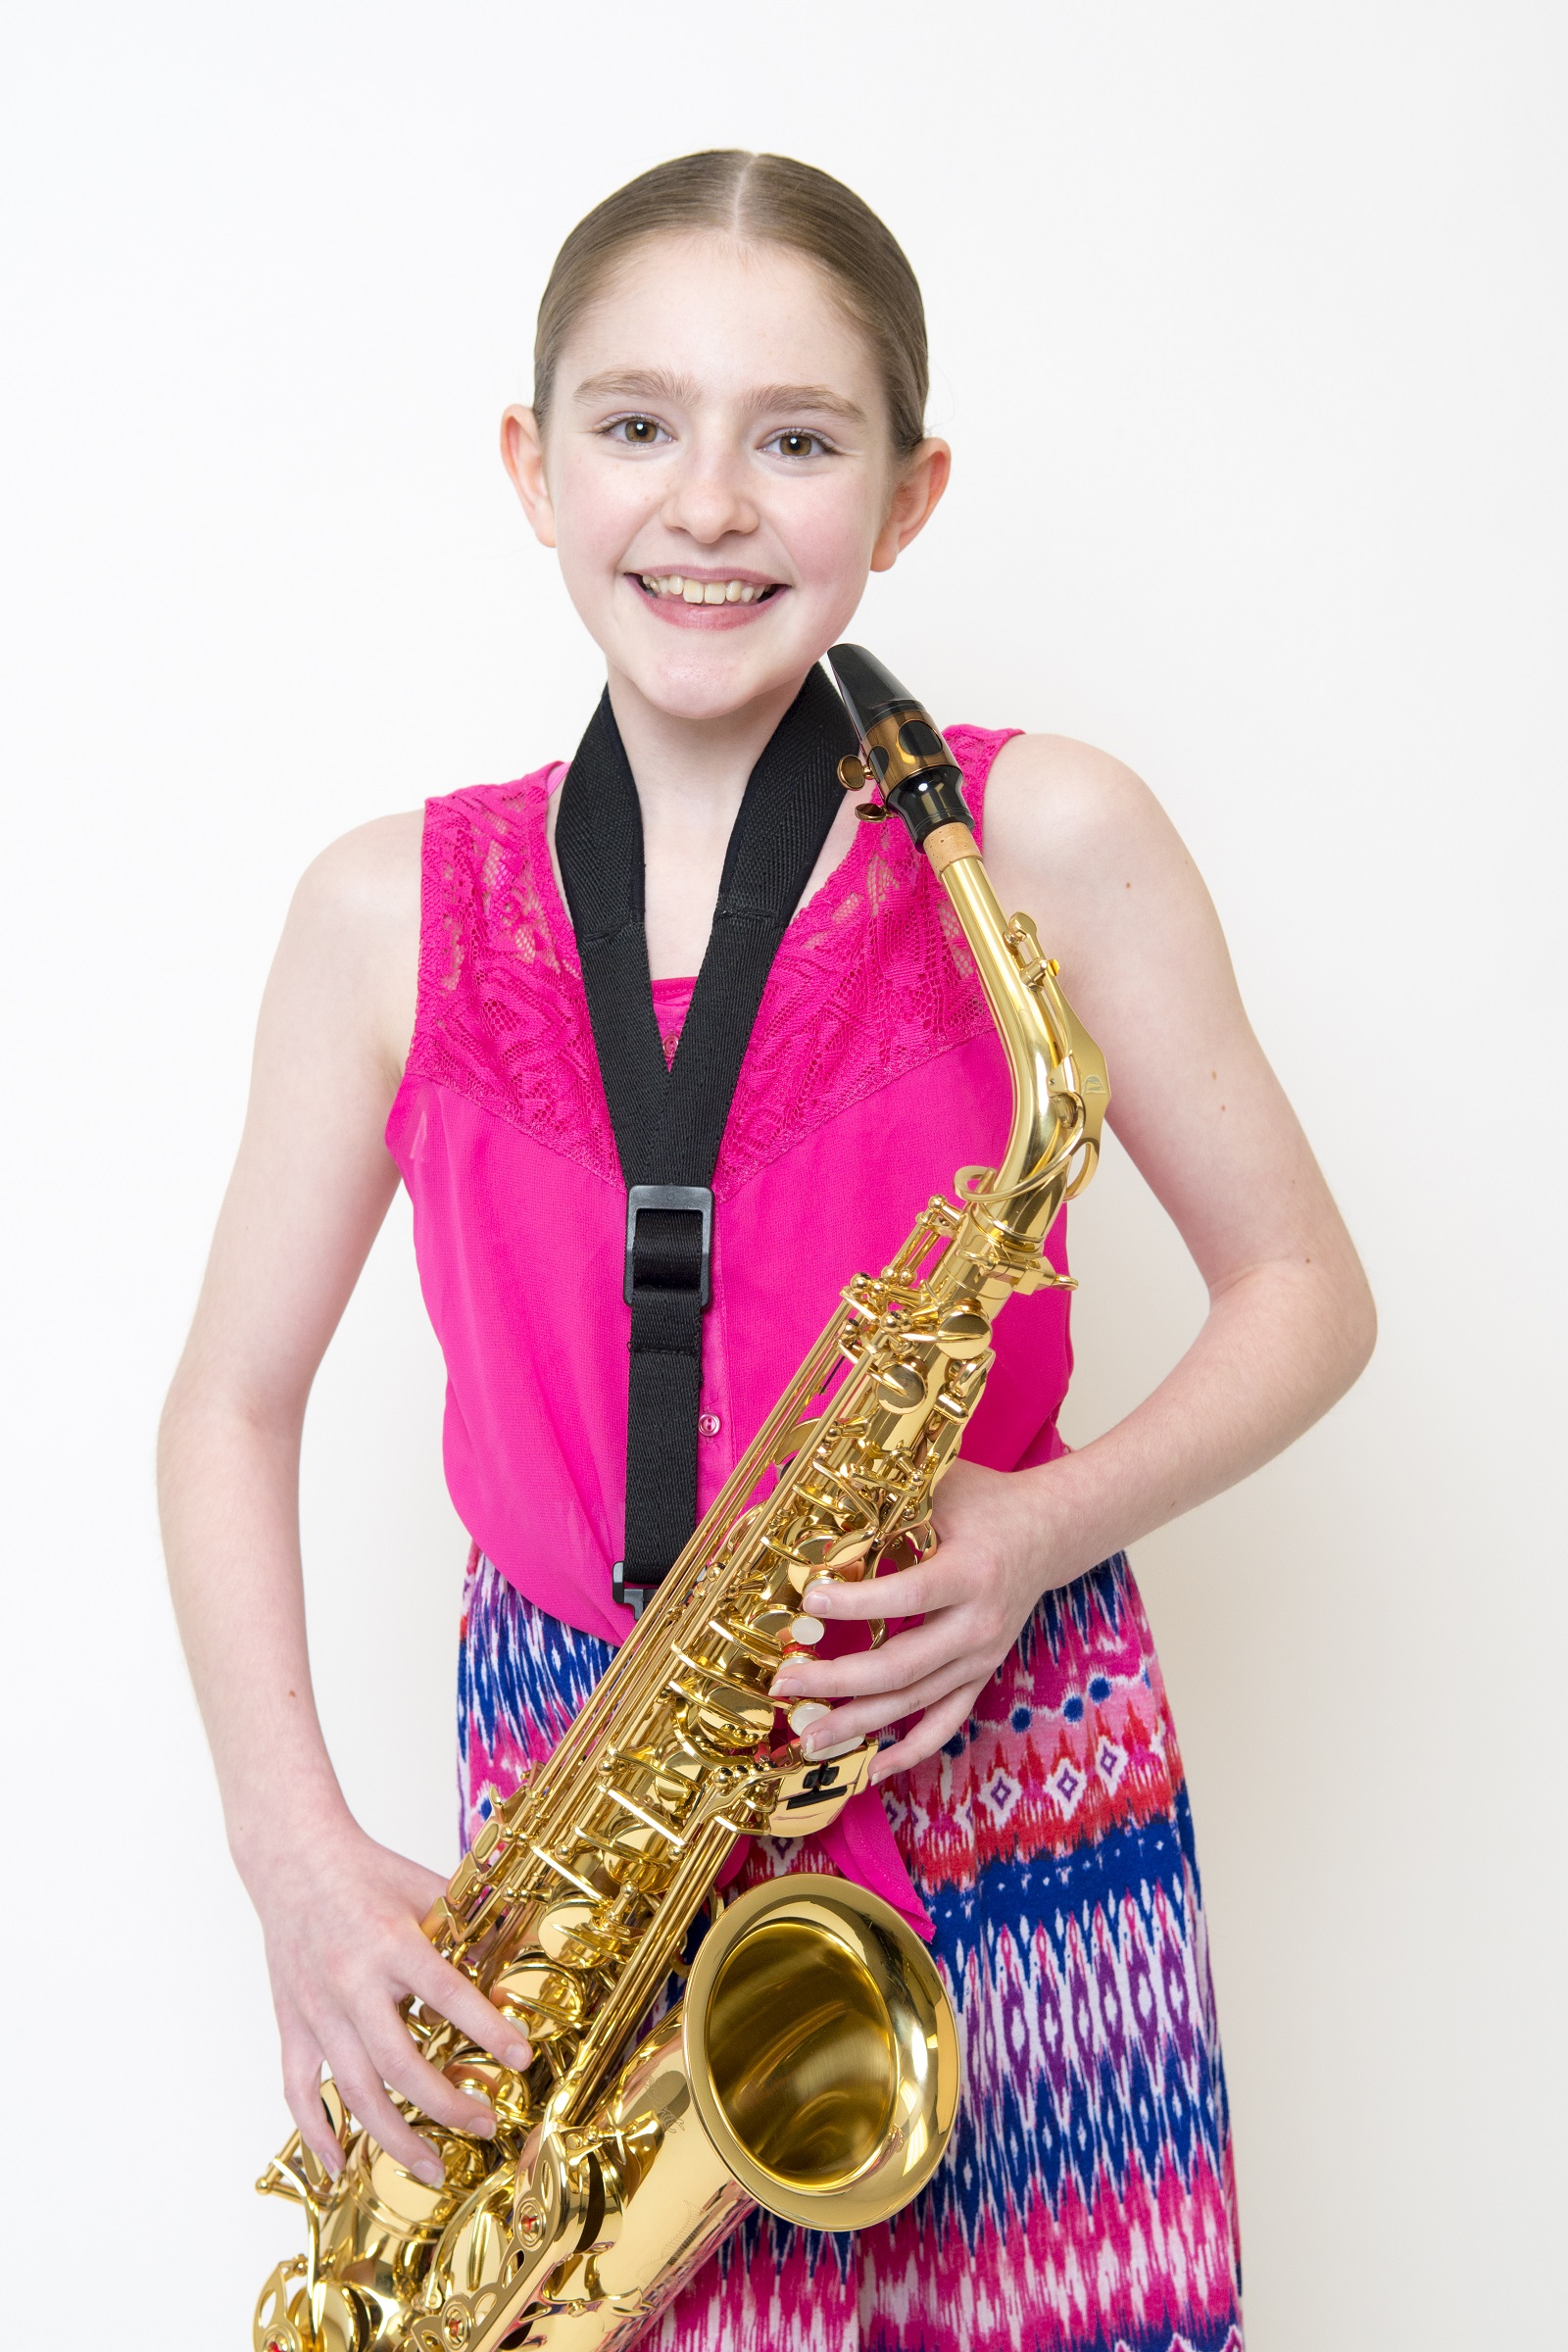 how much does an alto saxophone cost